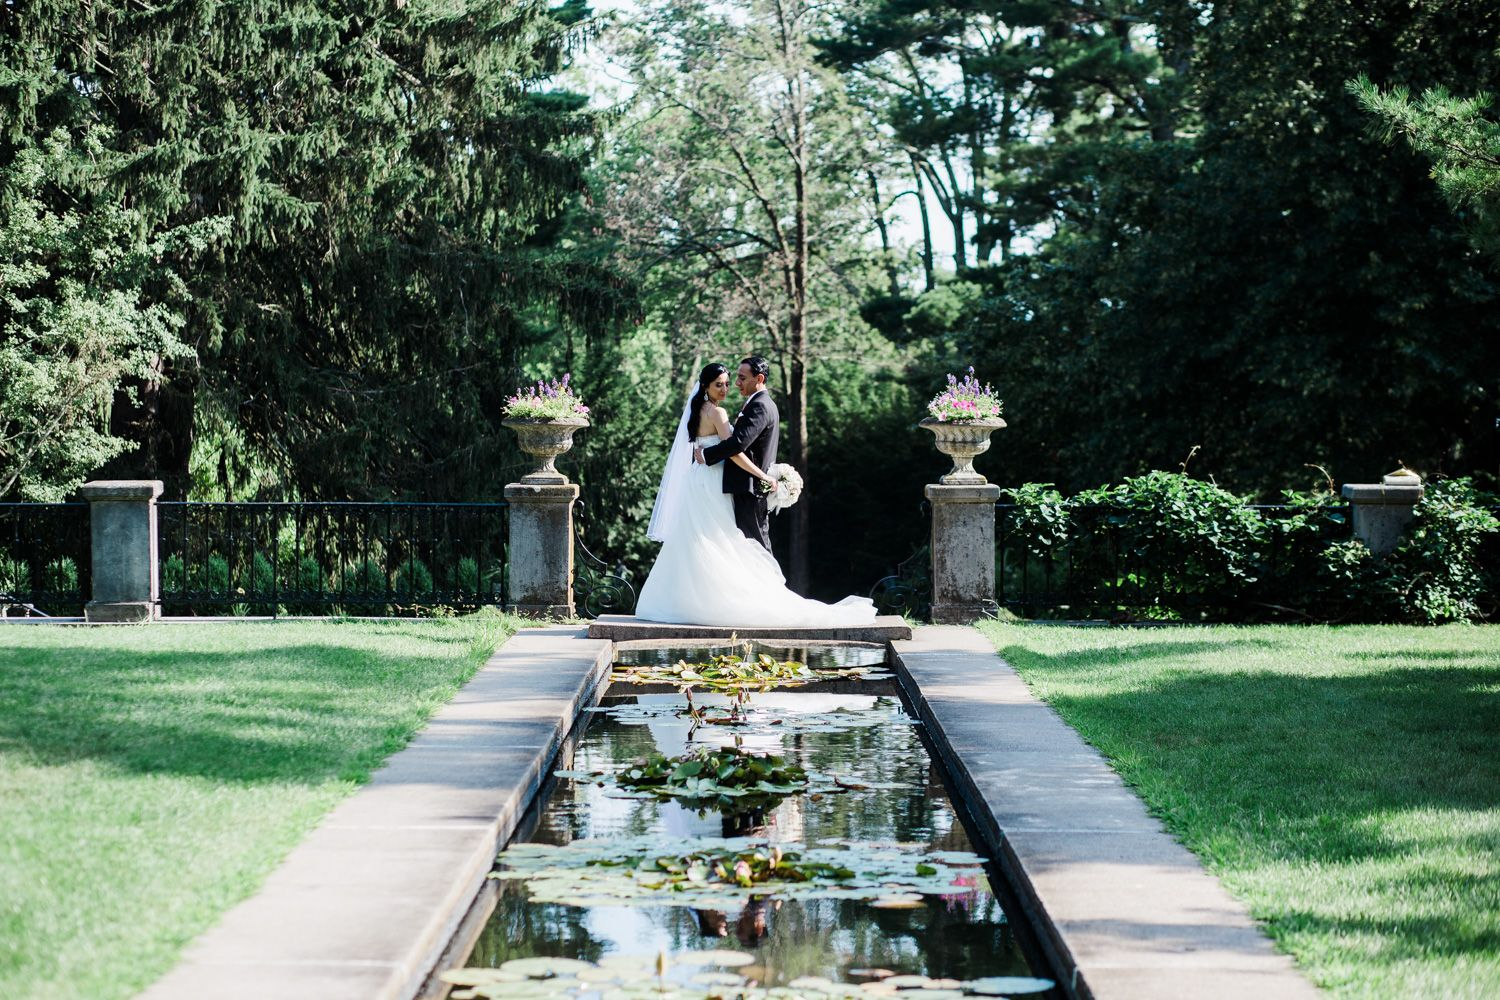 Bride and groom reflected in pool at Skylands Manor